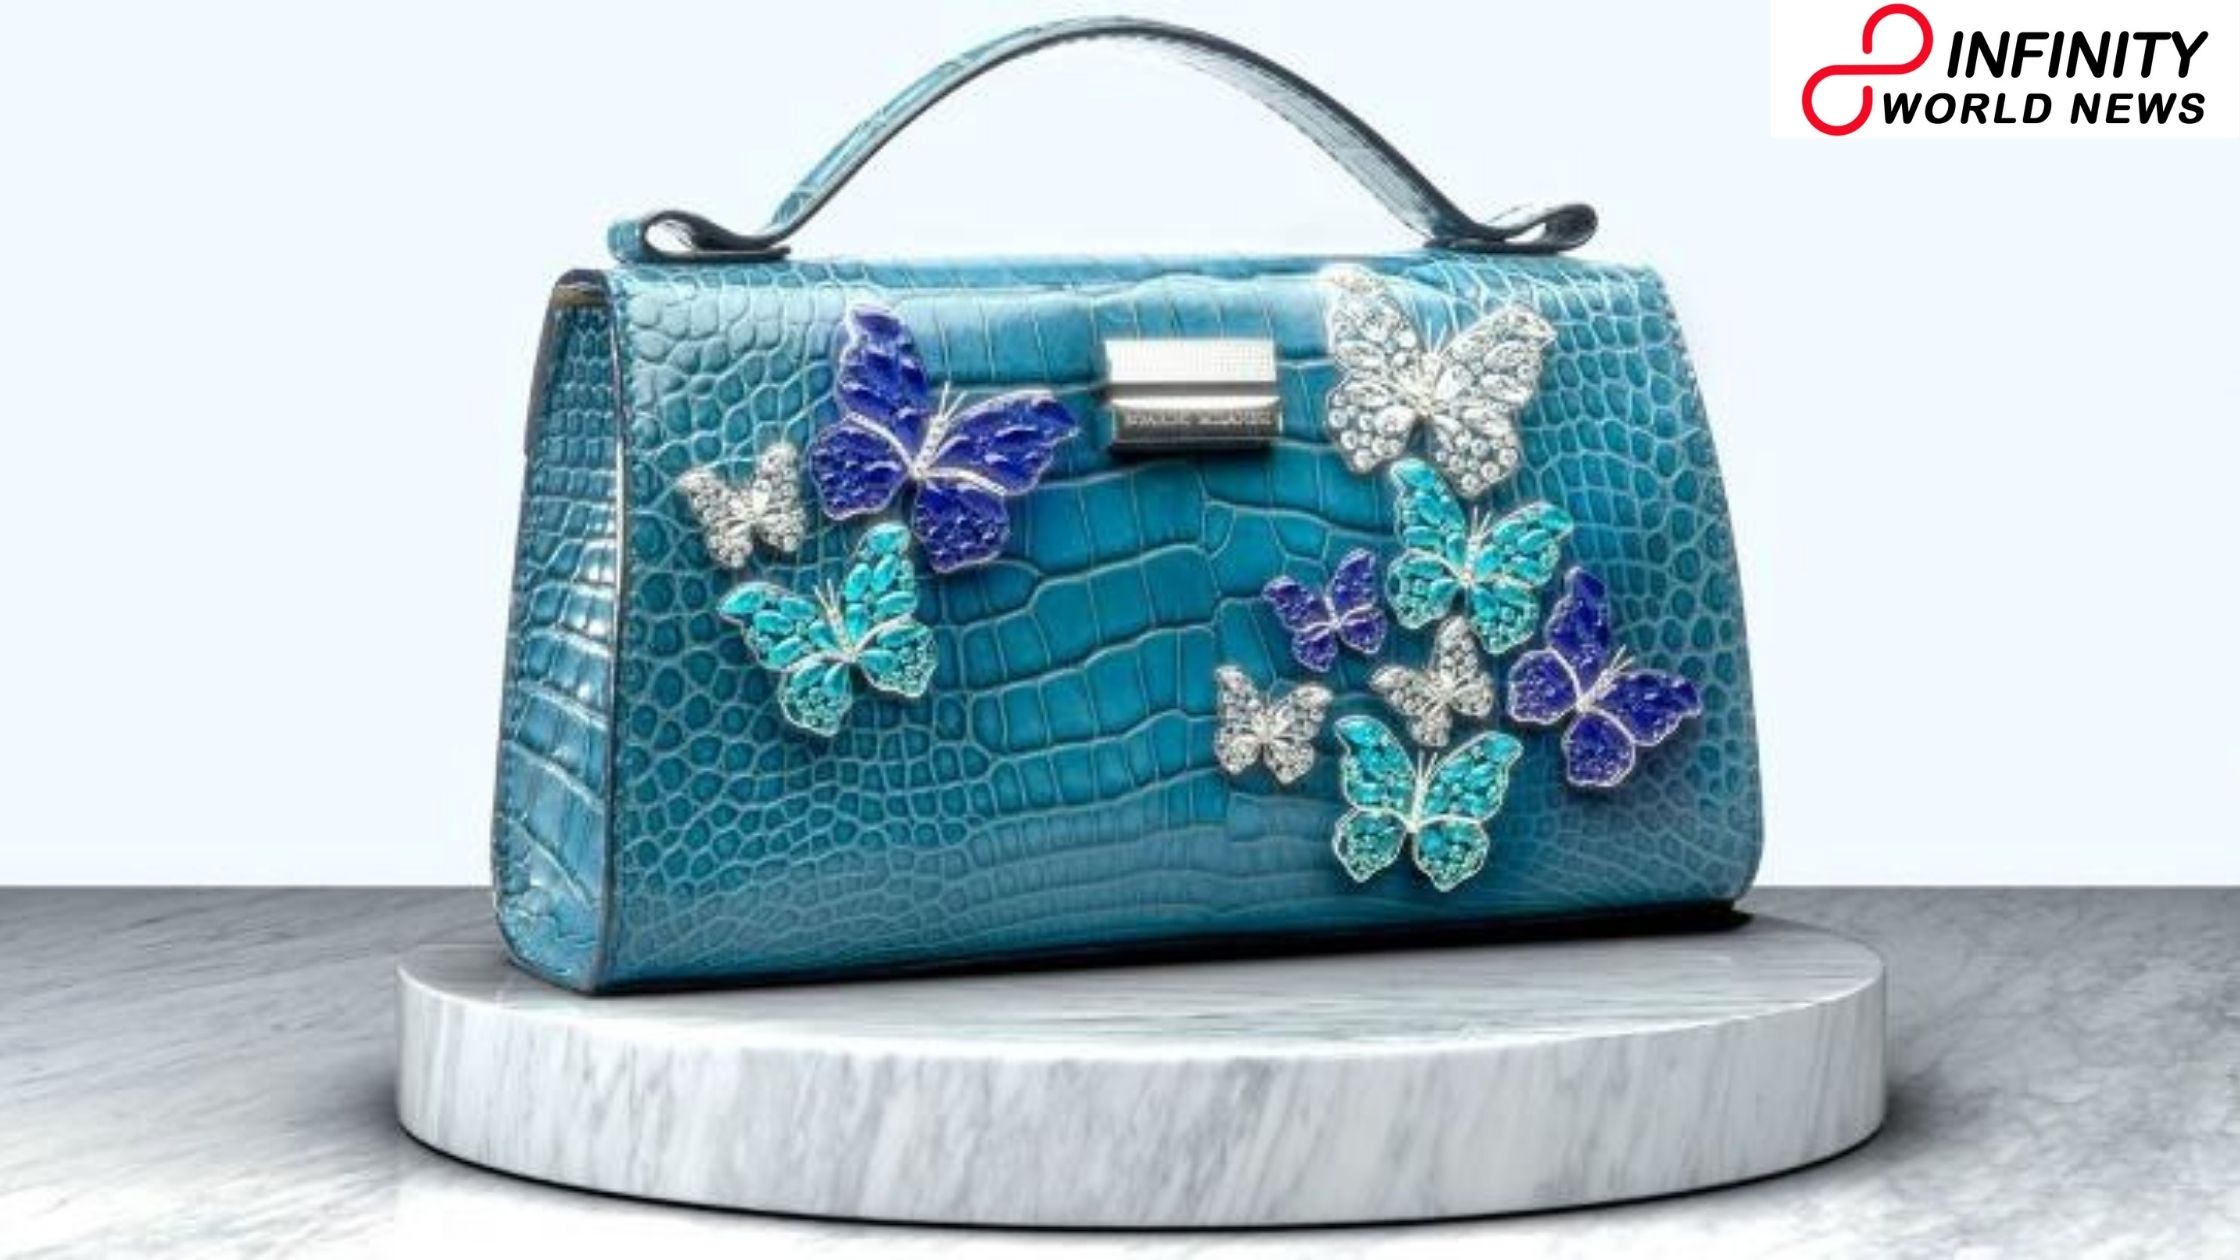 Italian brand dispatches Rs 52 crore worth handbag set with jewels and uncommon pearls